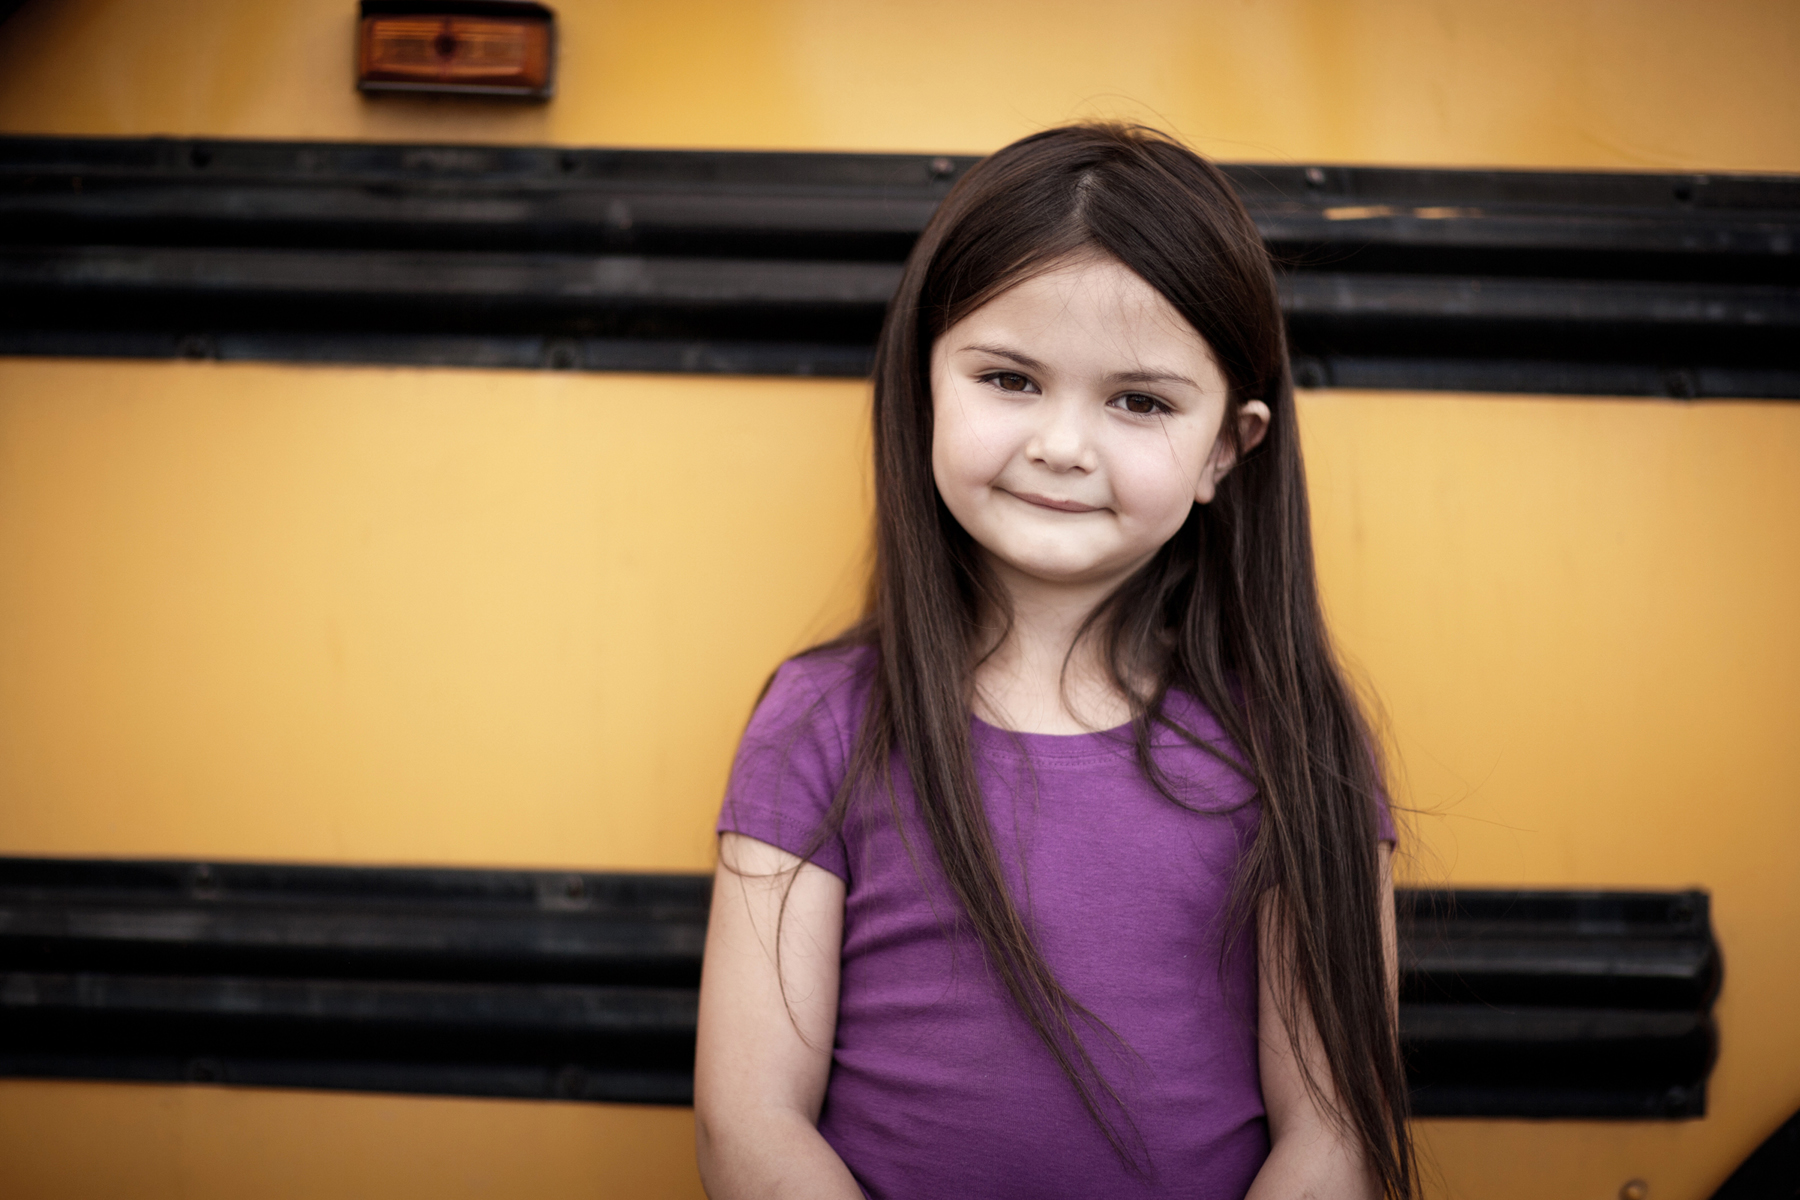 Young girl standing in front of a yellow school bus